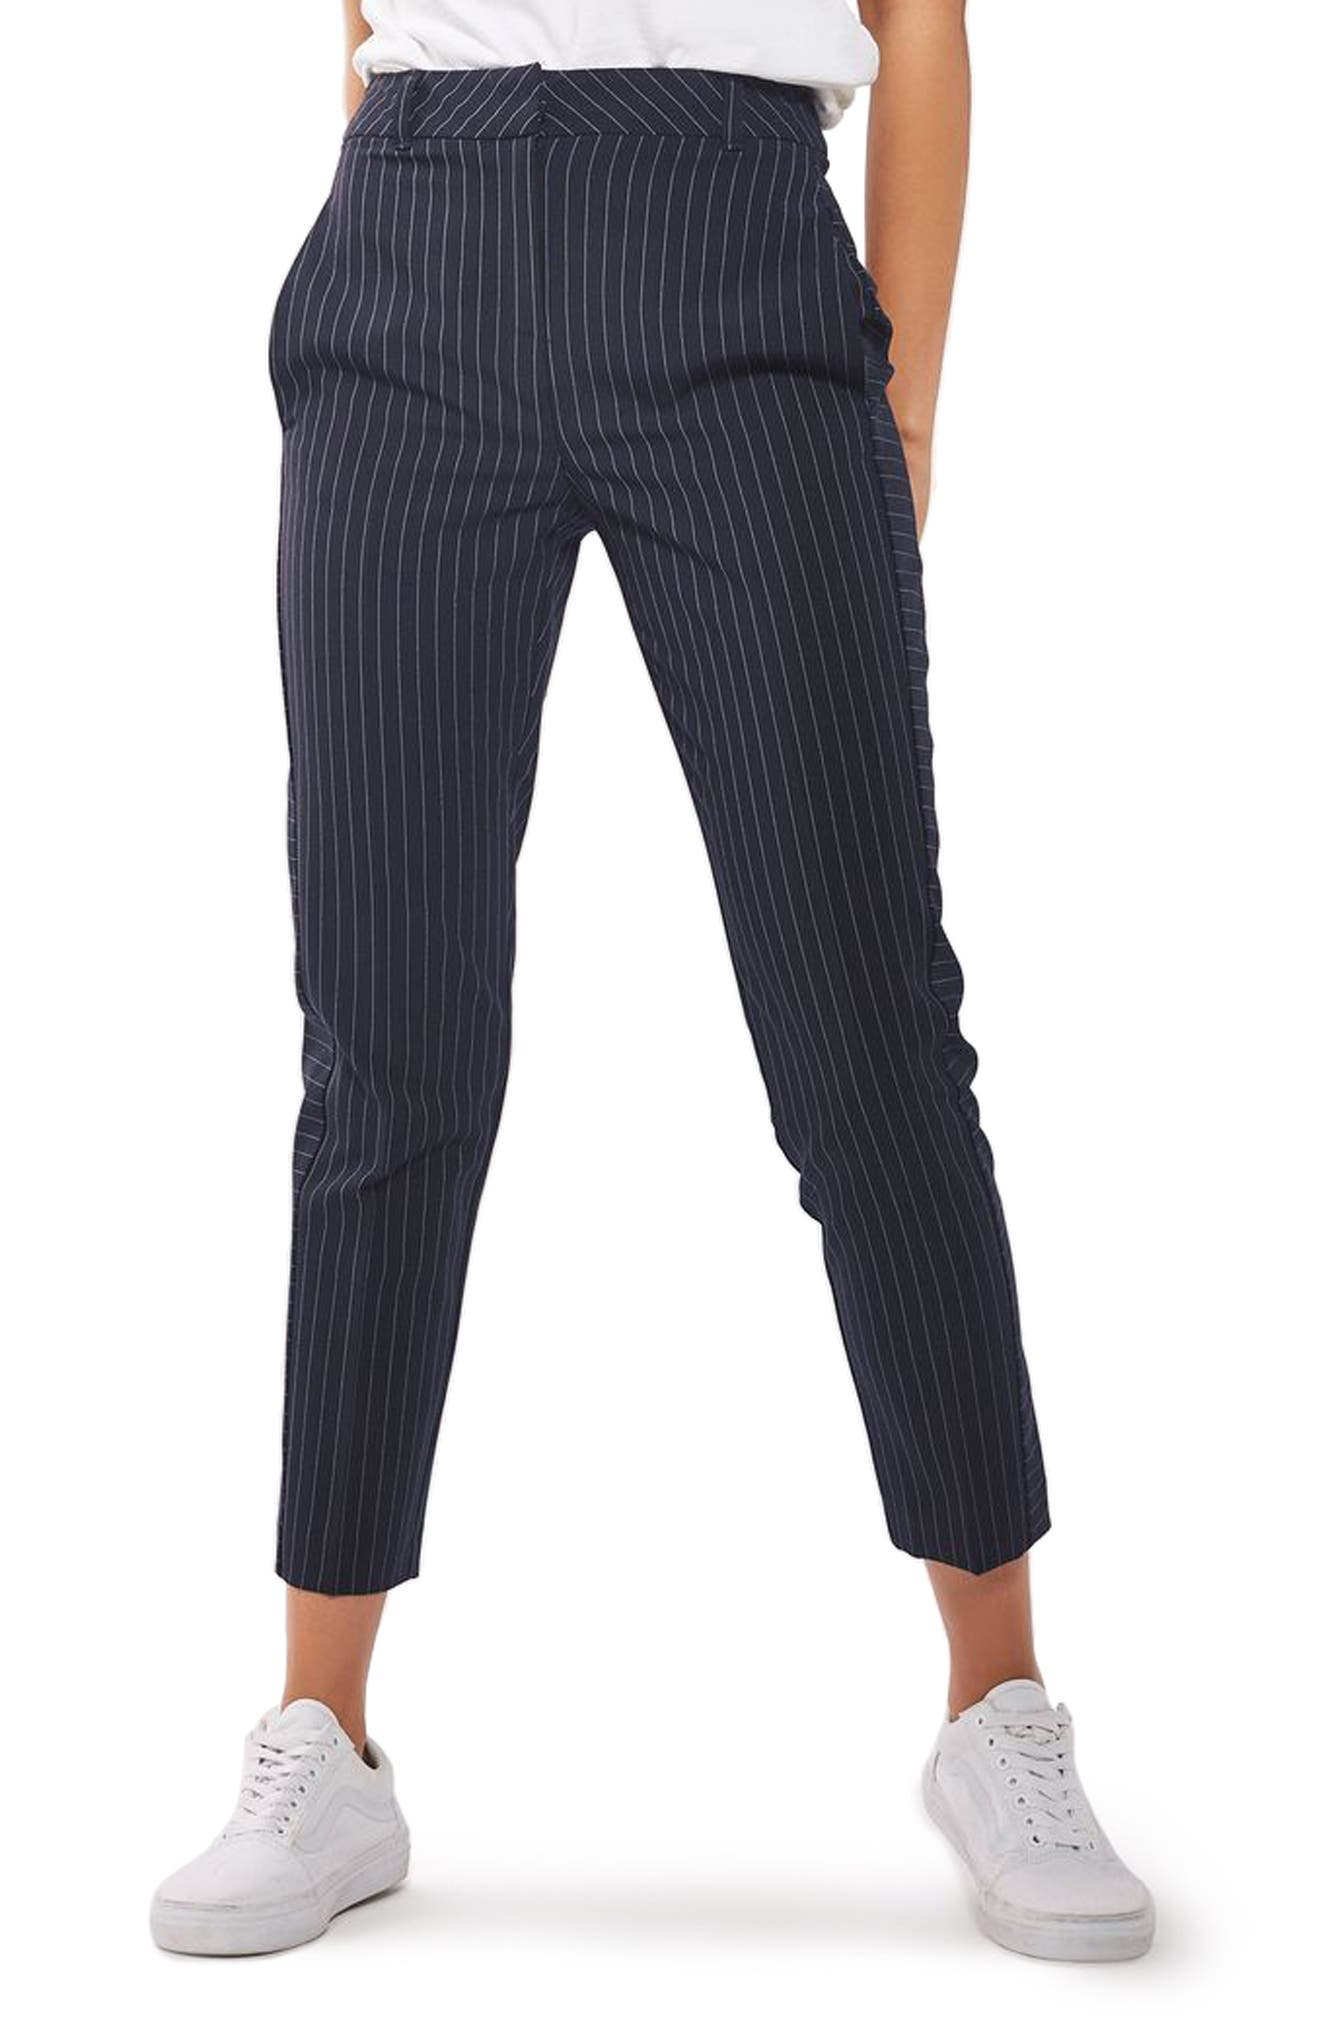 Cut About Pinstripe Cigarette Trousers,                             Main thumbnail 1, color,                             Navy Blue